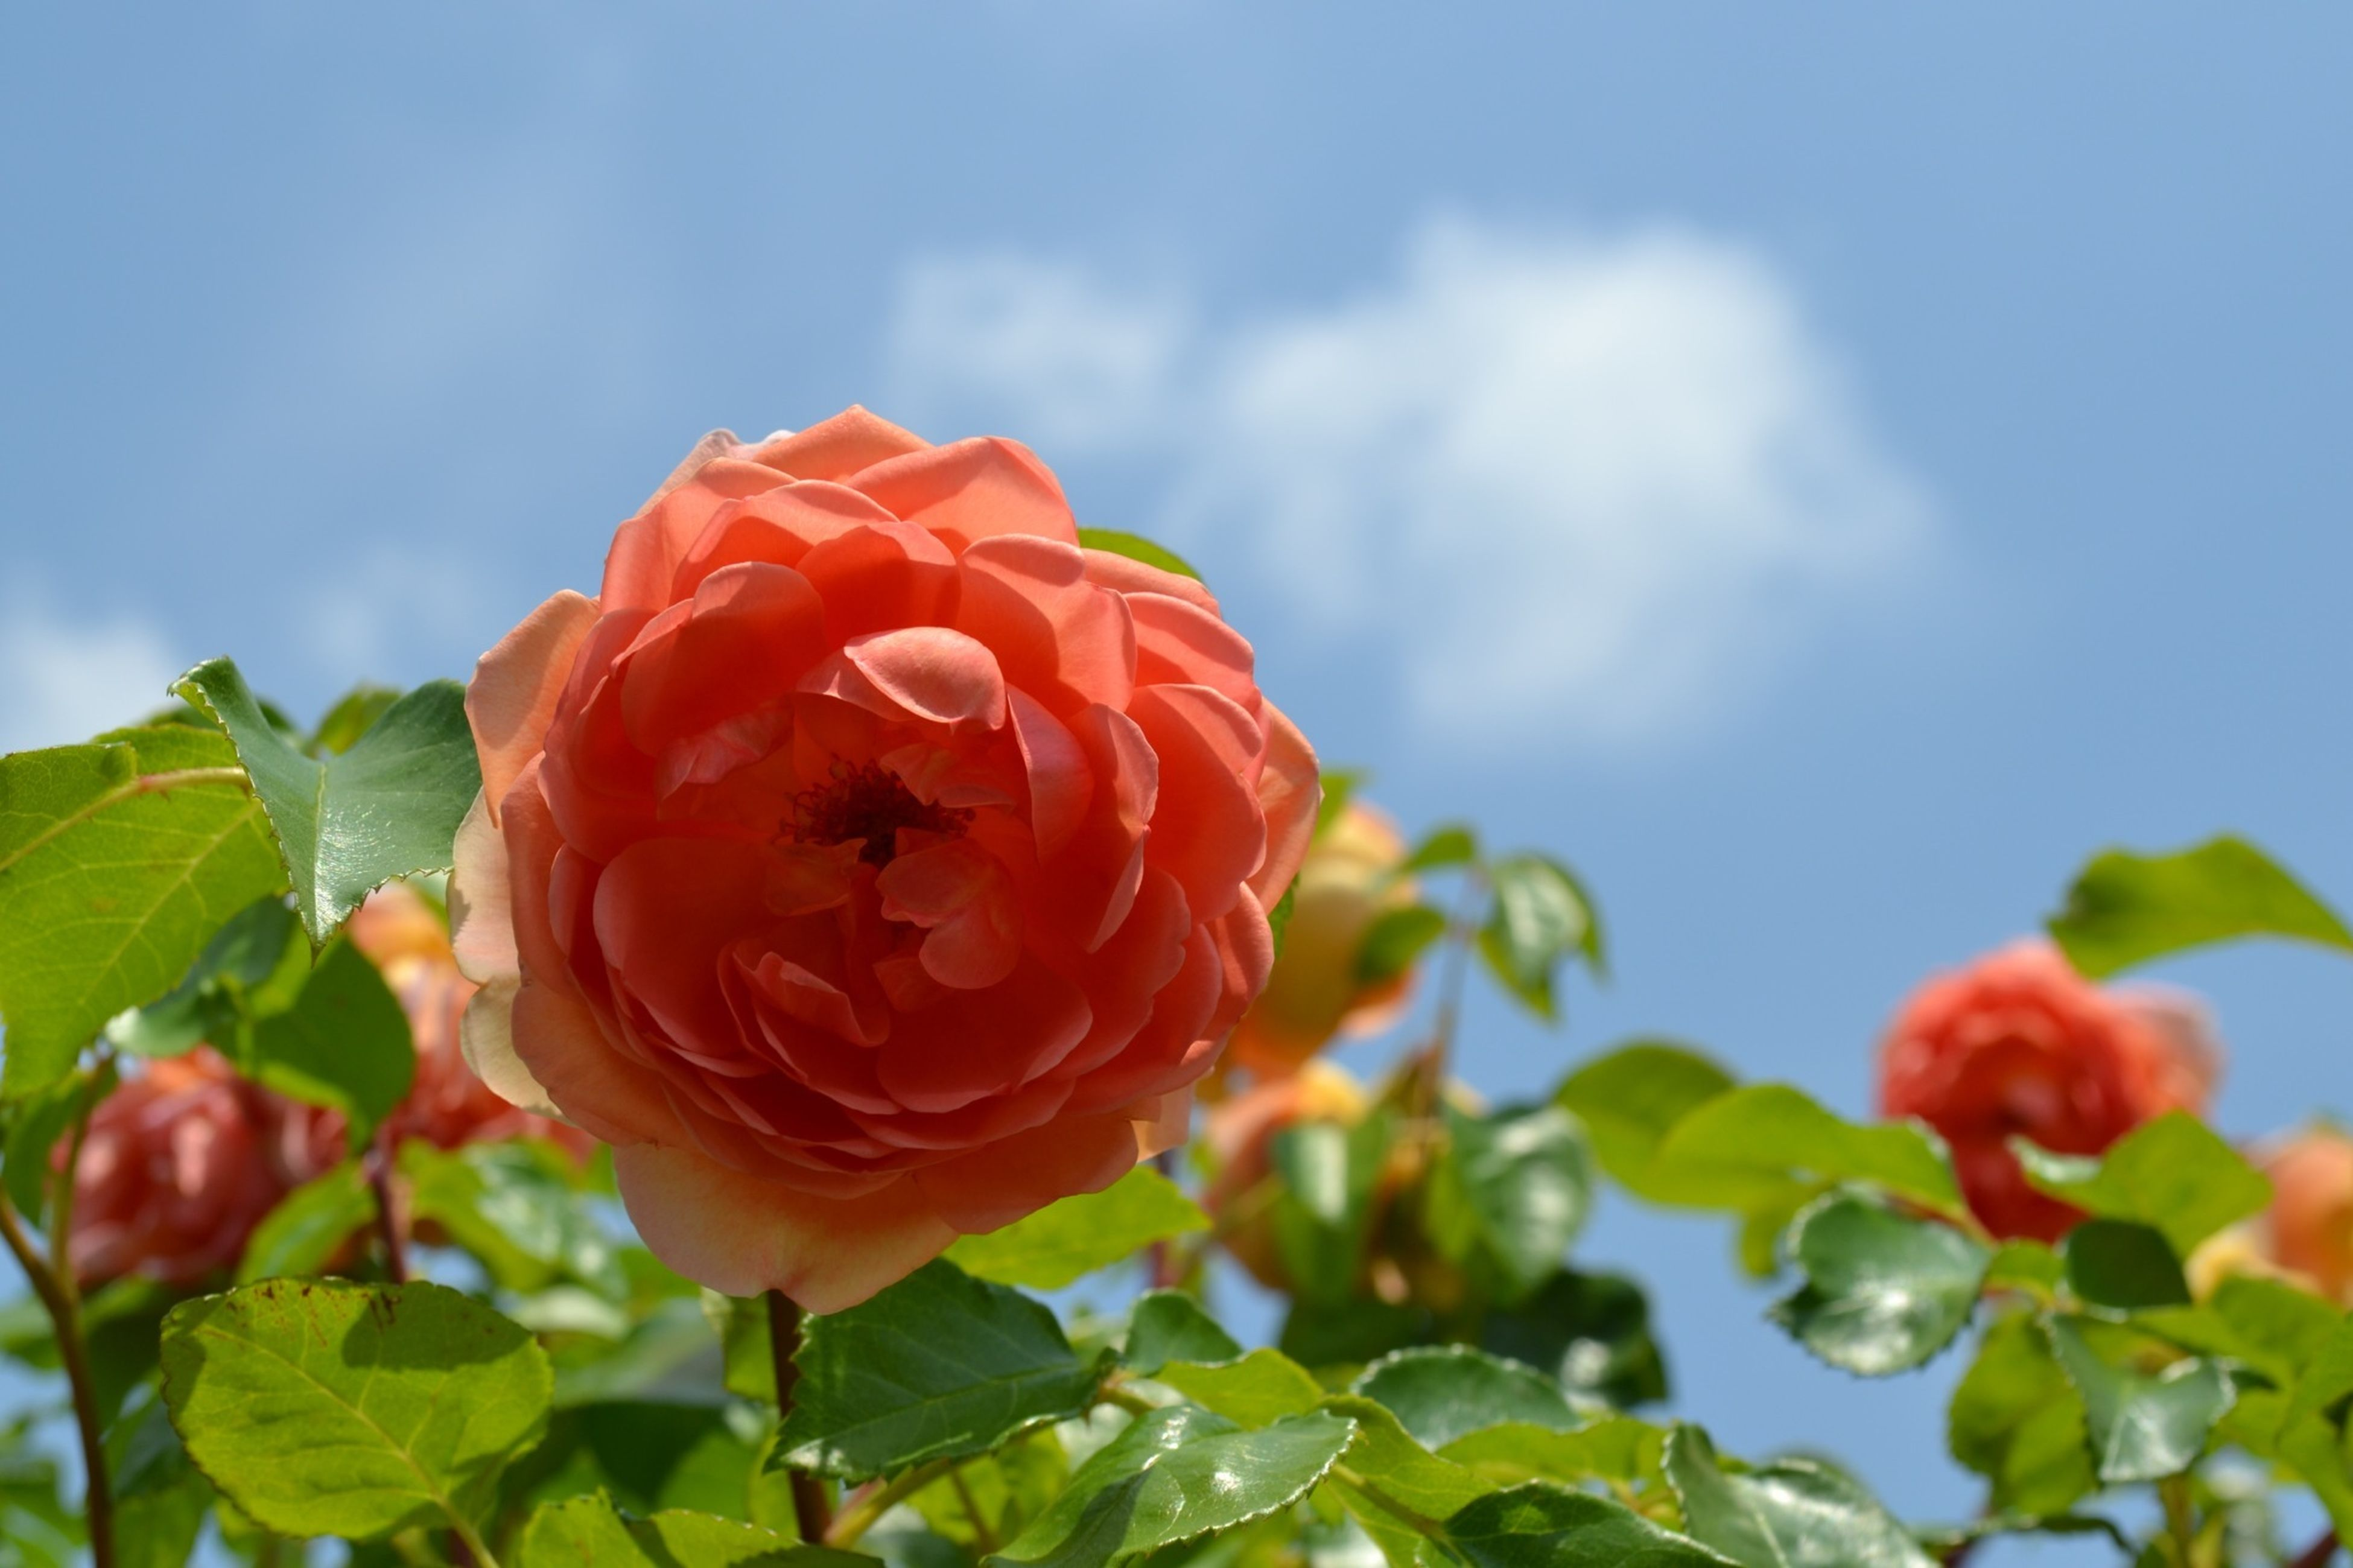 flower, freshness, petal, flower head, fragility, rose - flower, beauty in nature, growth, blooming, close-up, nature, leaf, focus on foreground, plant, sky, in bloom, rose, red, single flower, day